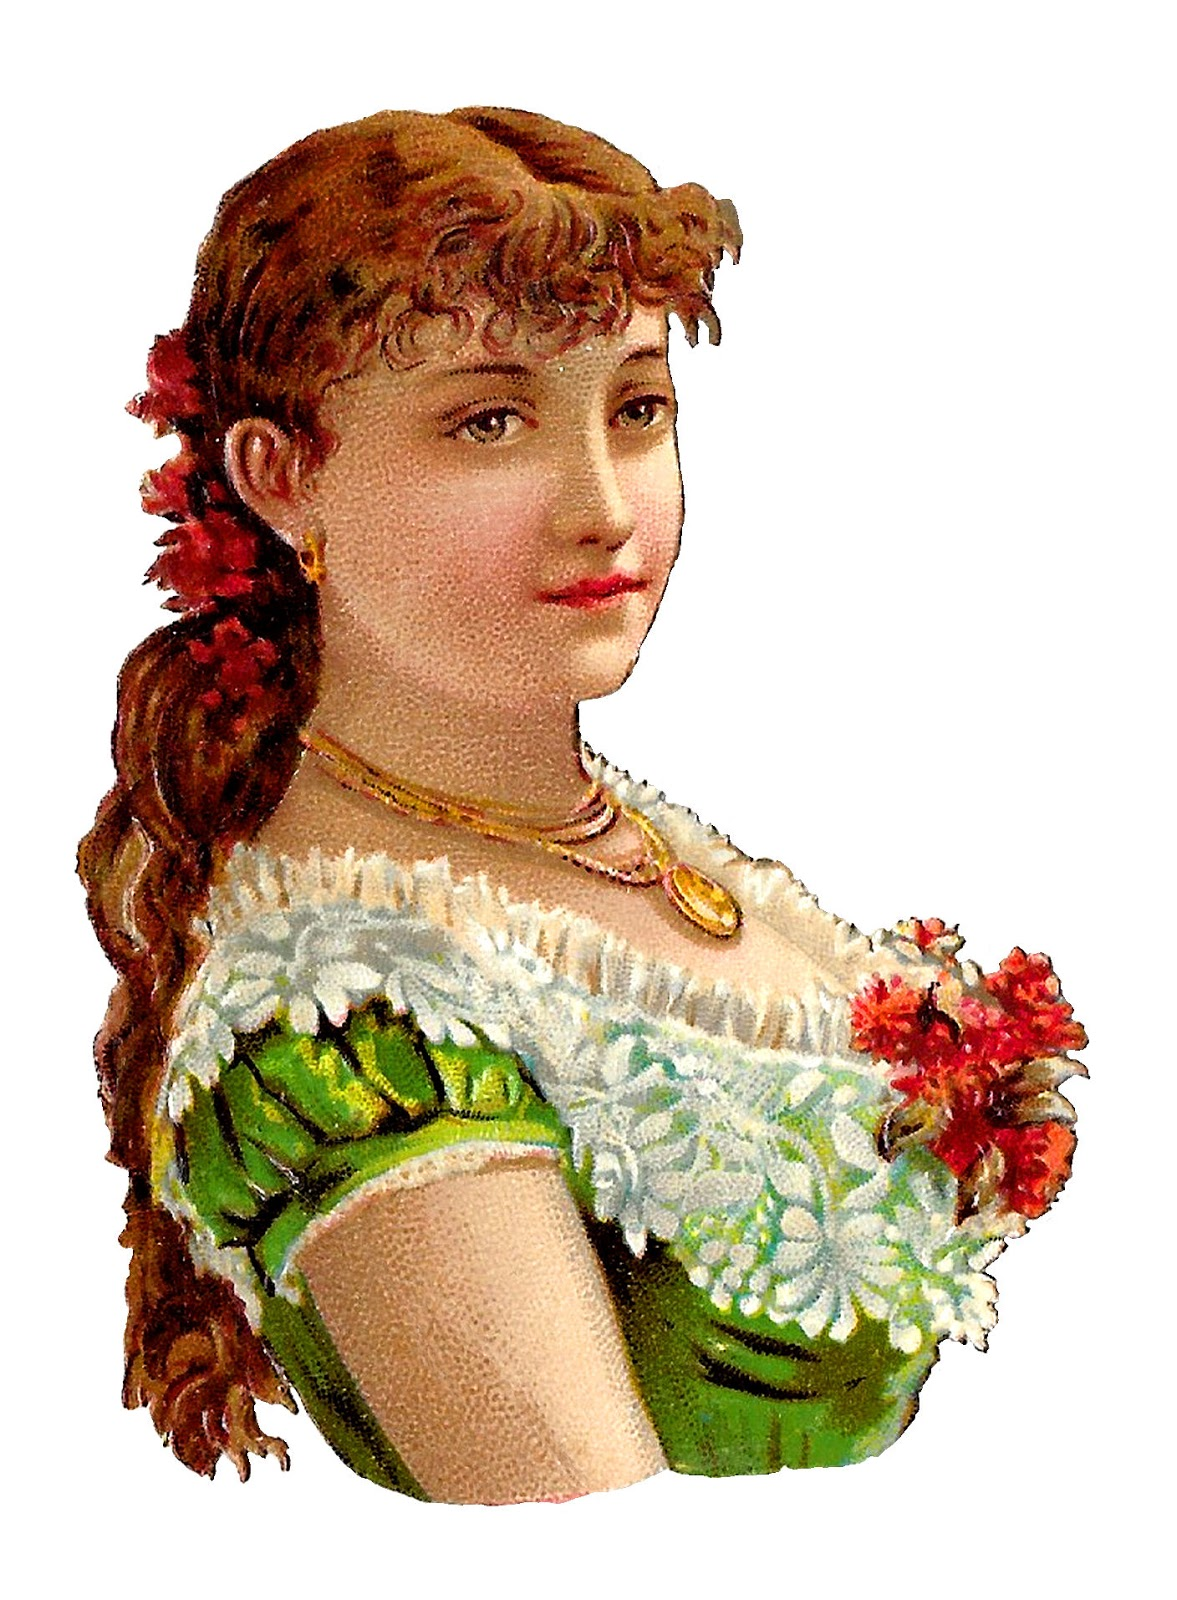 Woman Victorian Ilration Fashion Image Clipart Digital